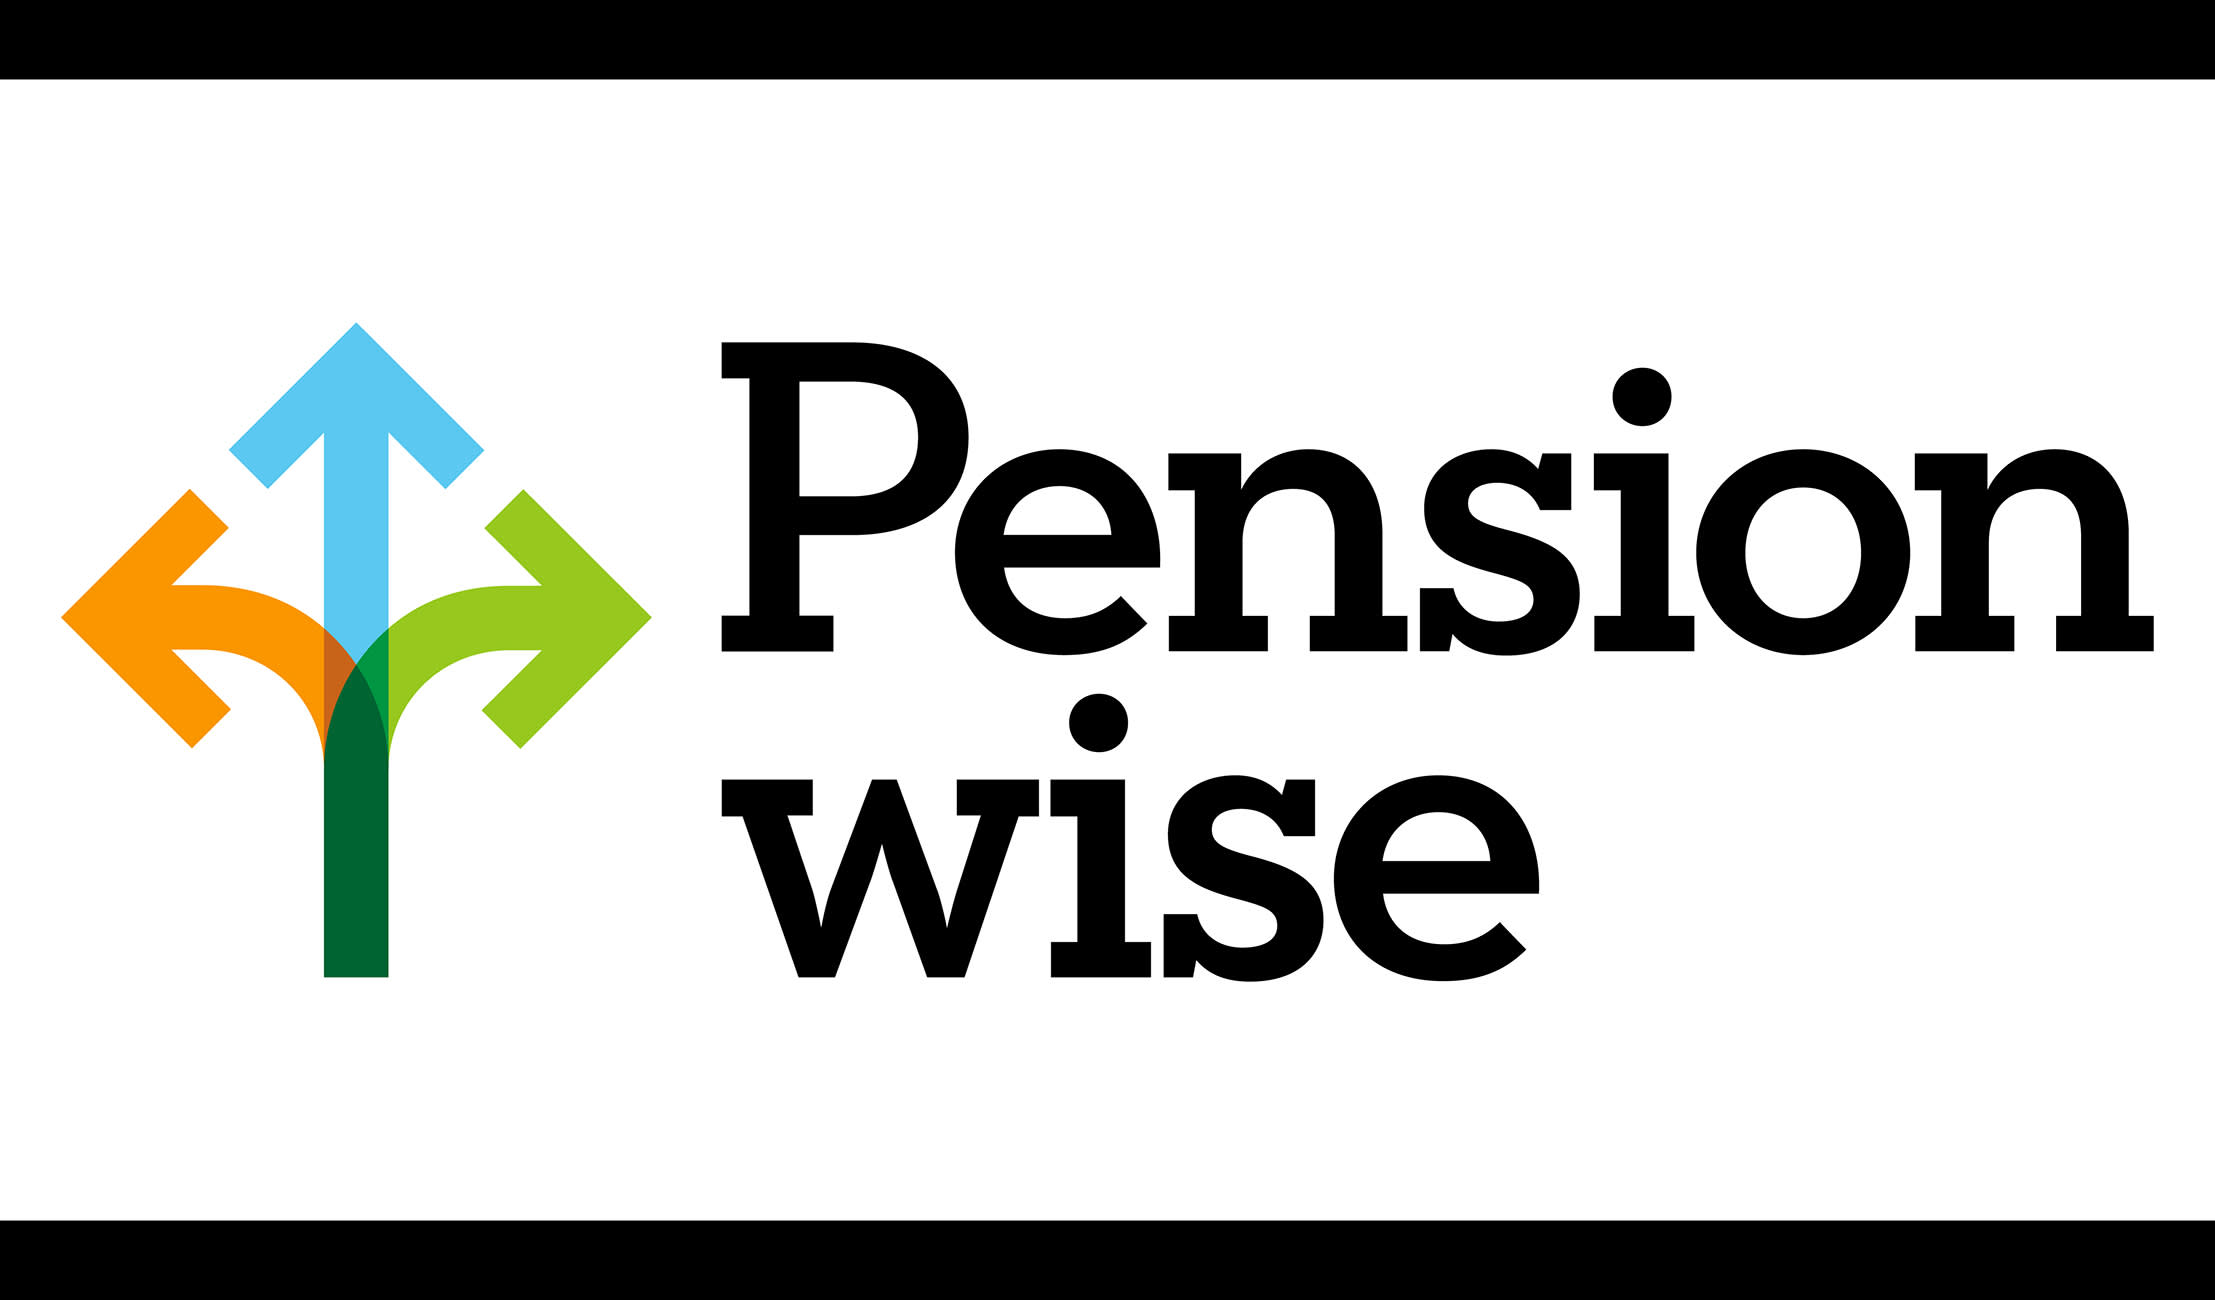 Cost of Pension Wise revealed